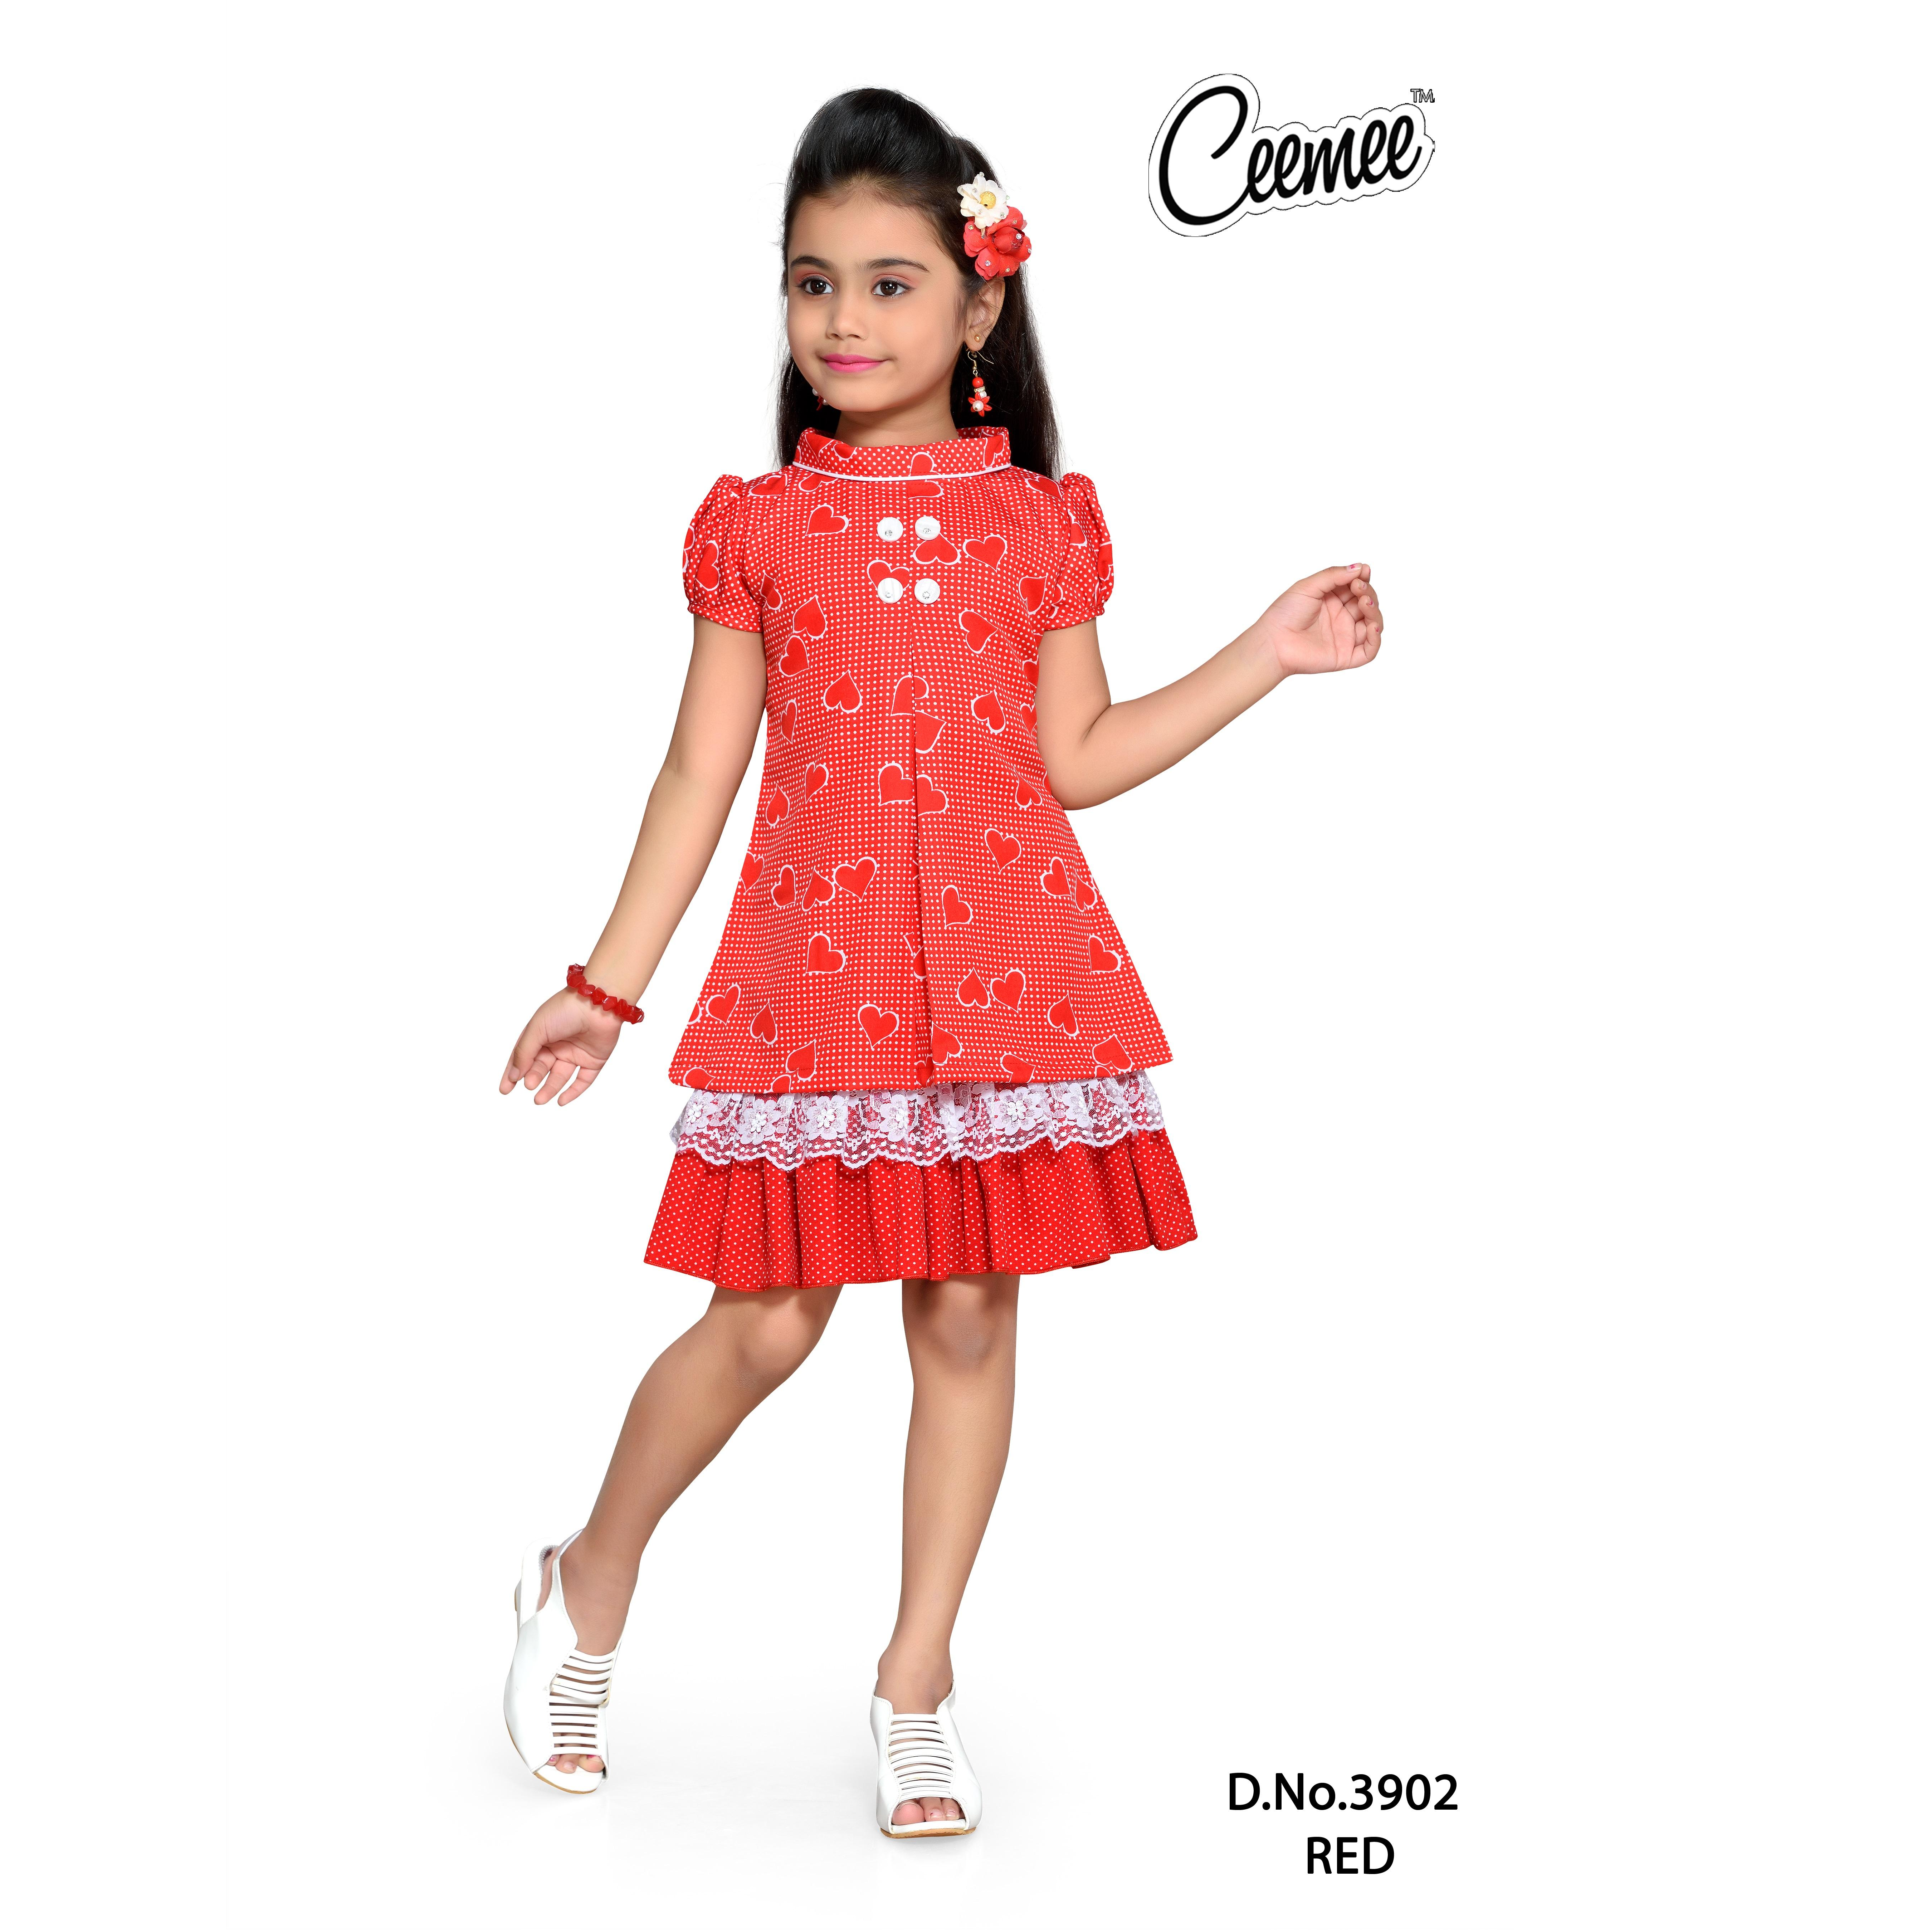 Daily Wear Girls Cotton Frocks Buy Girls Cotton Frock Designs Latest Frock Designs For Girls Baby Cotton Frocks Product On Alibaba Com